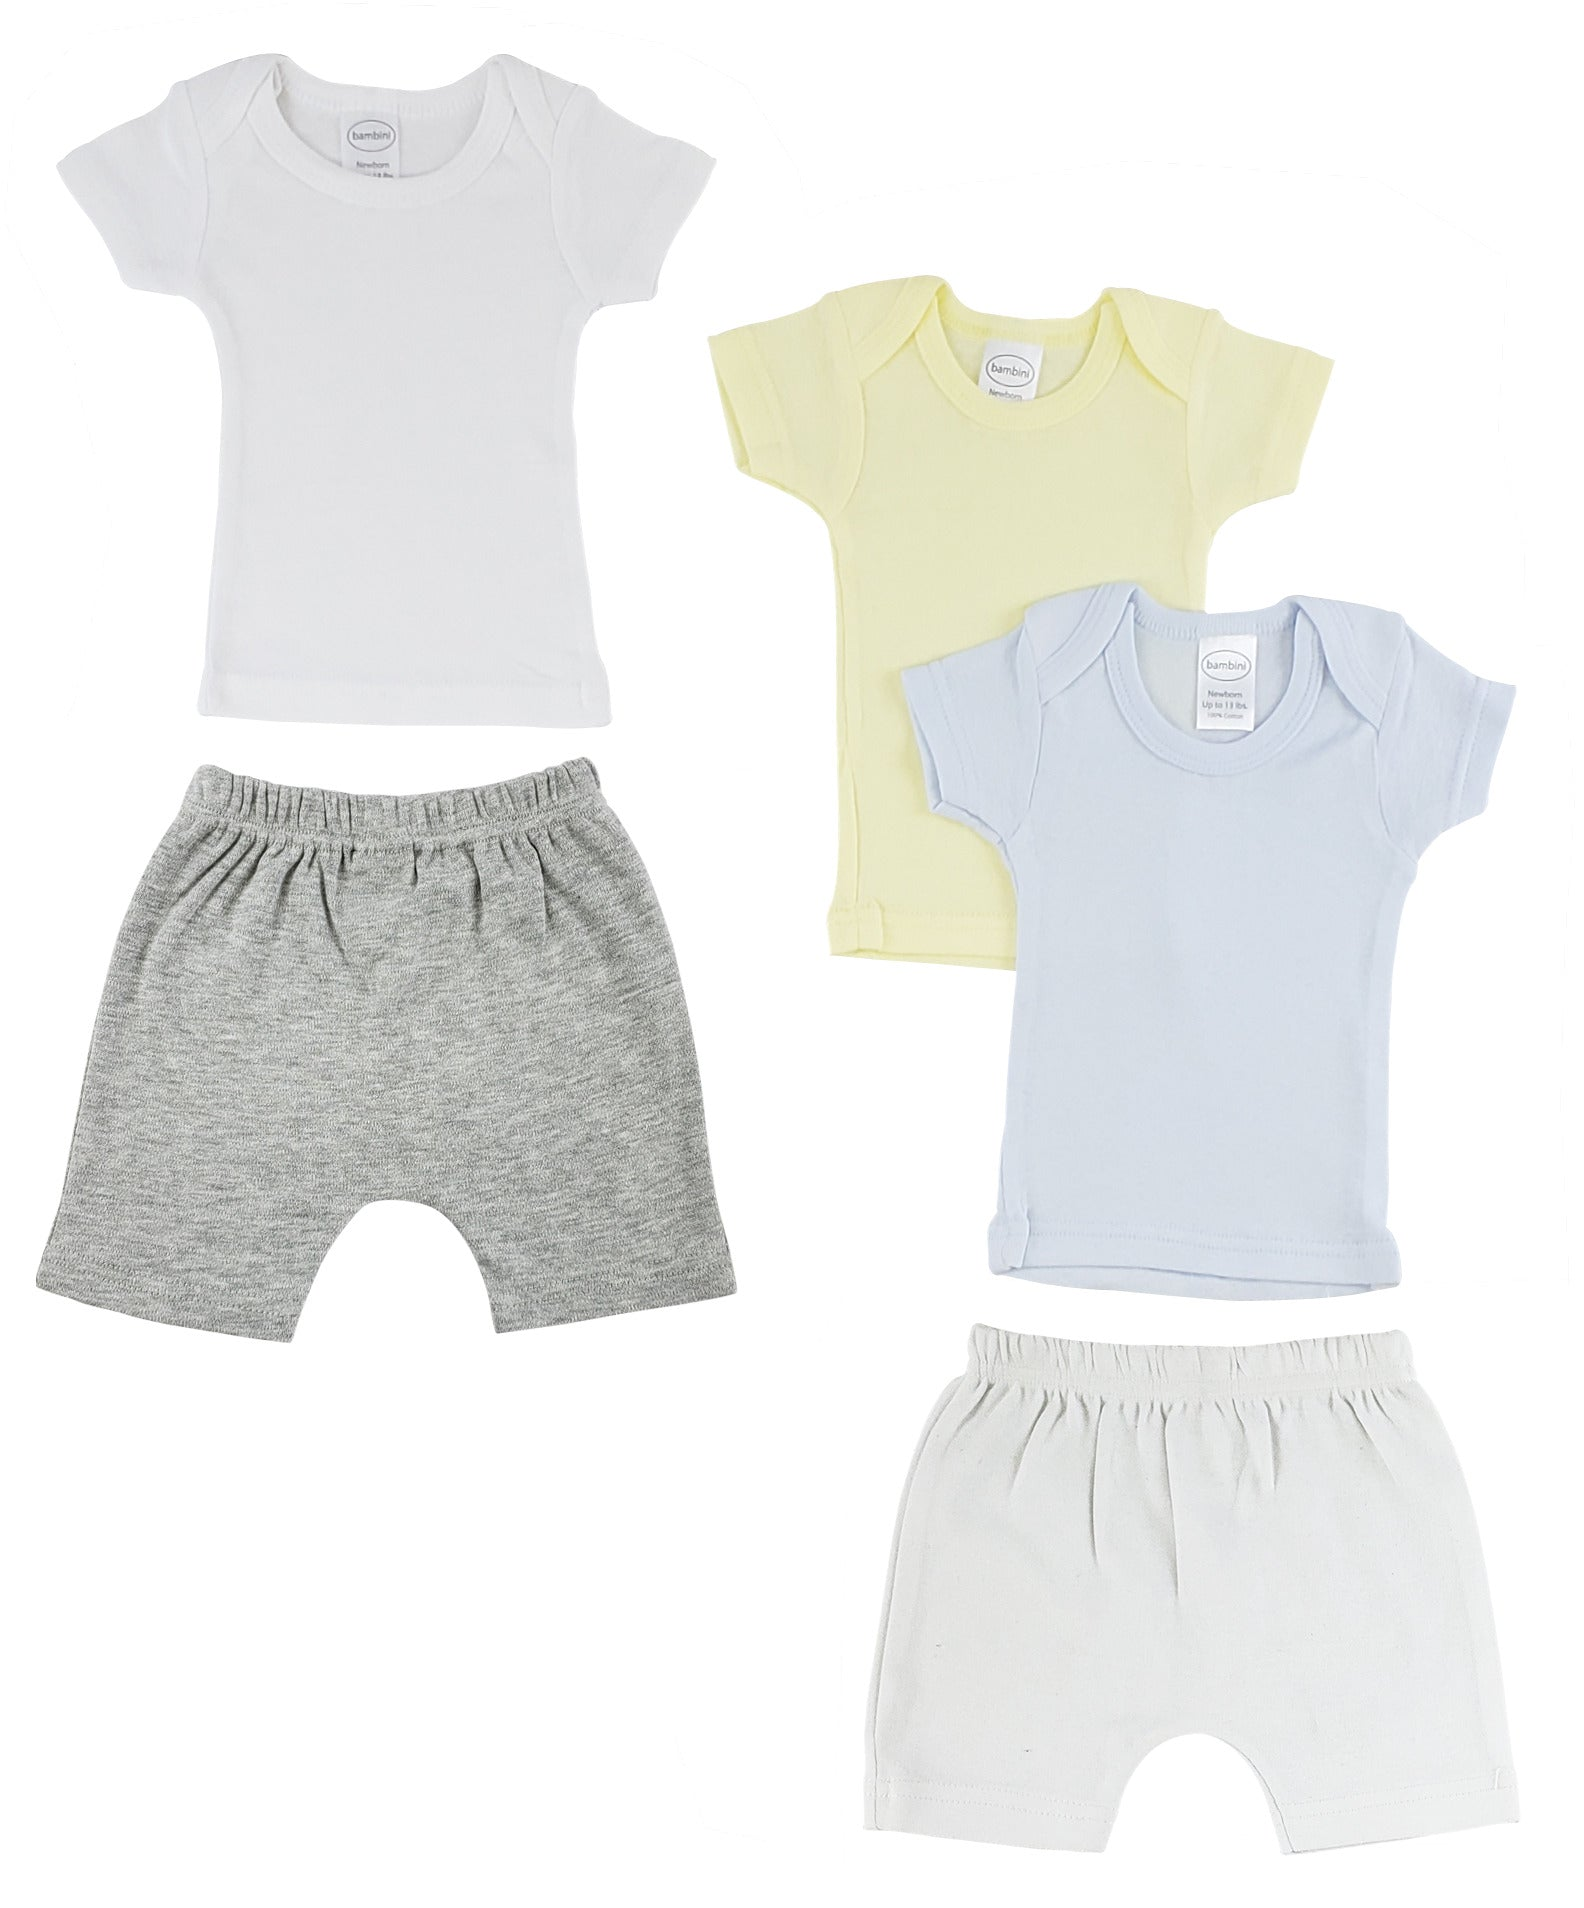 Infant Boys T-Shirts and Shorts